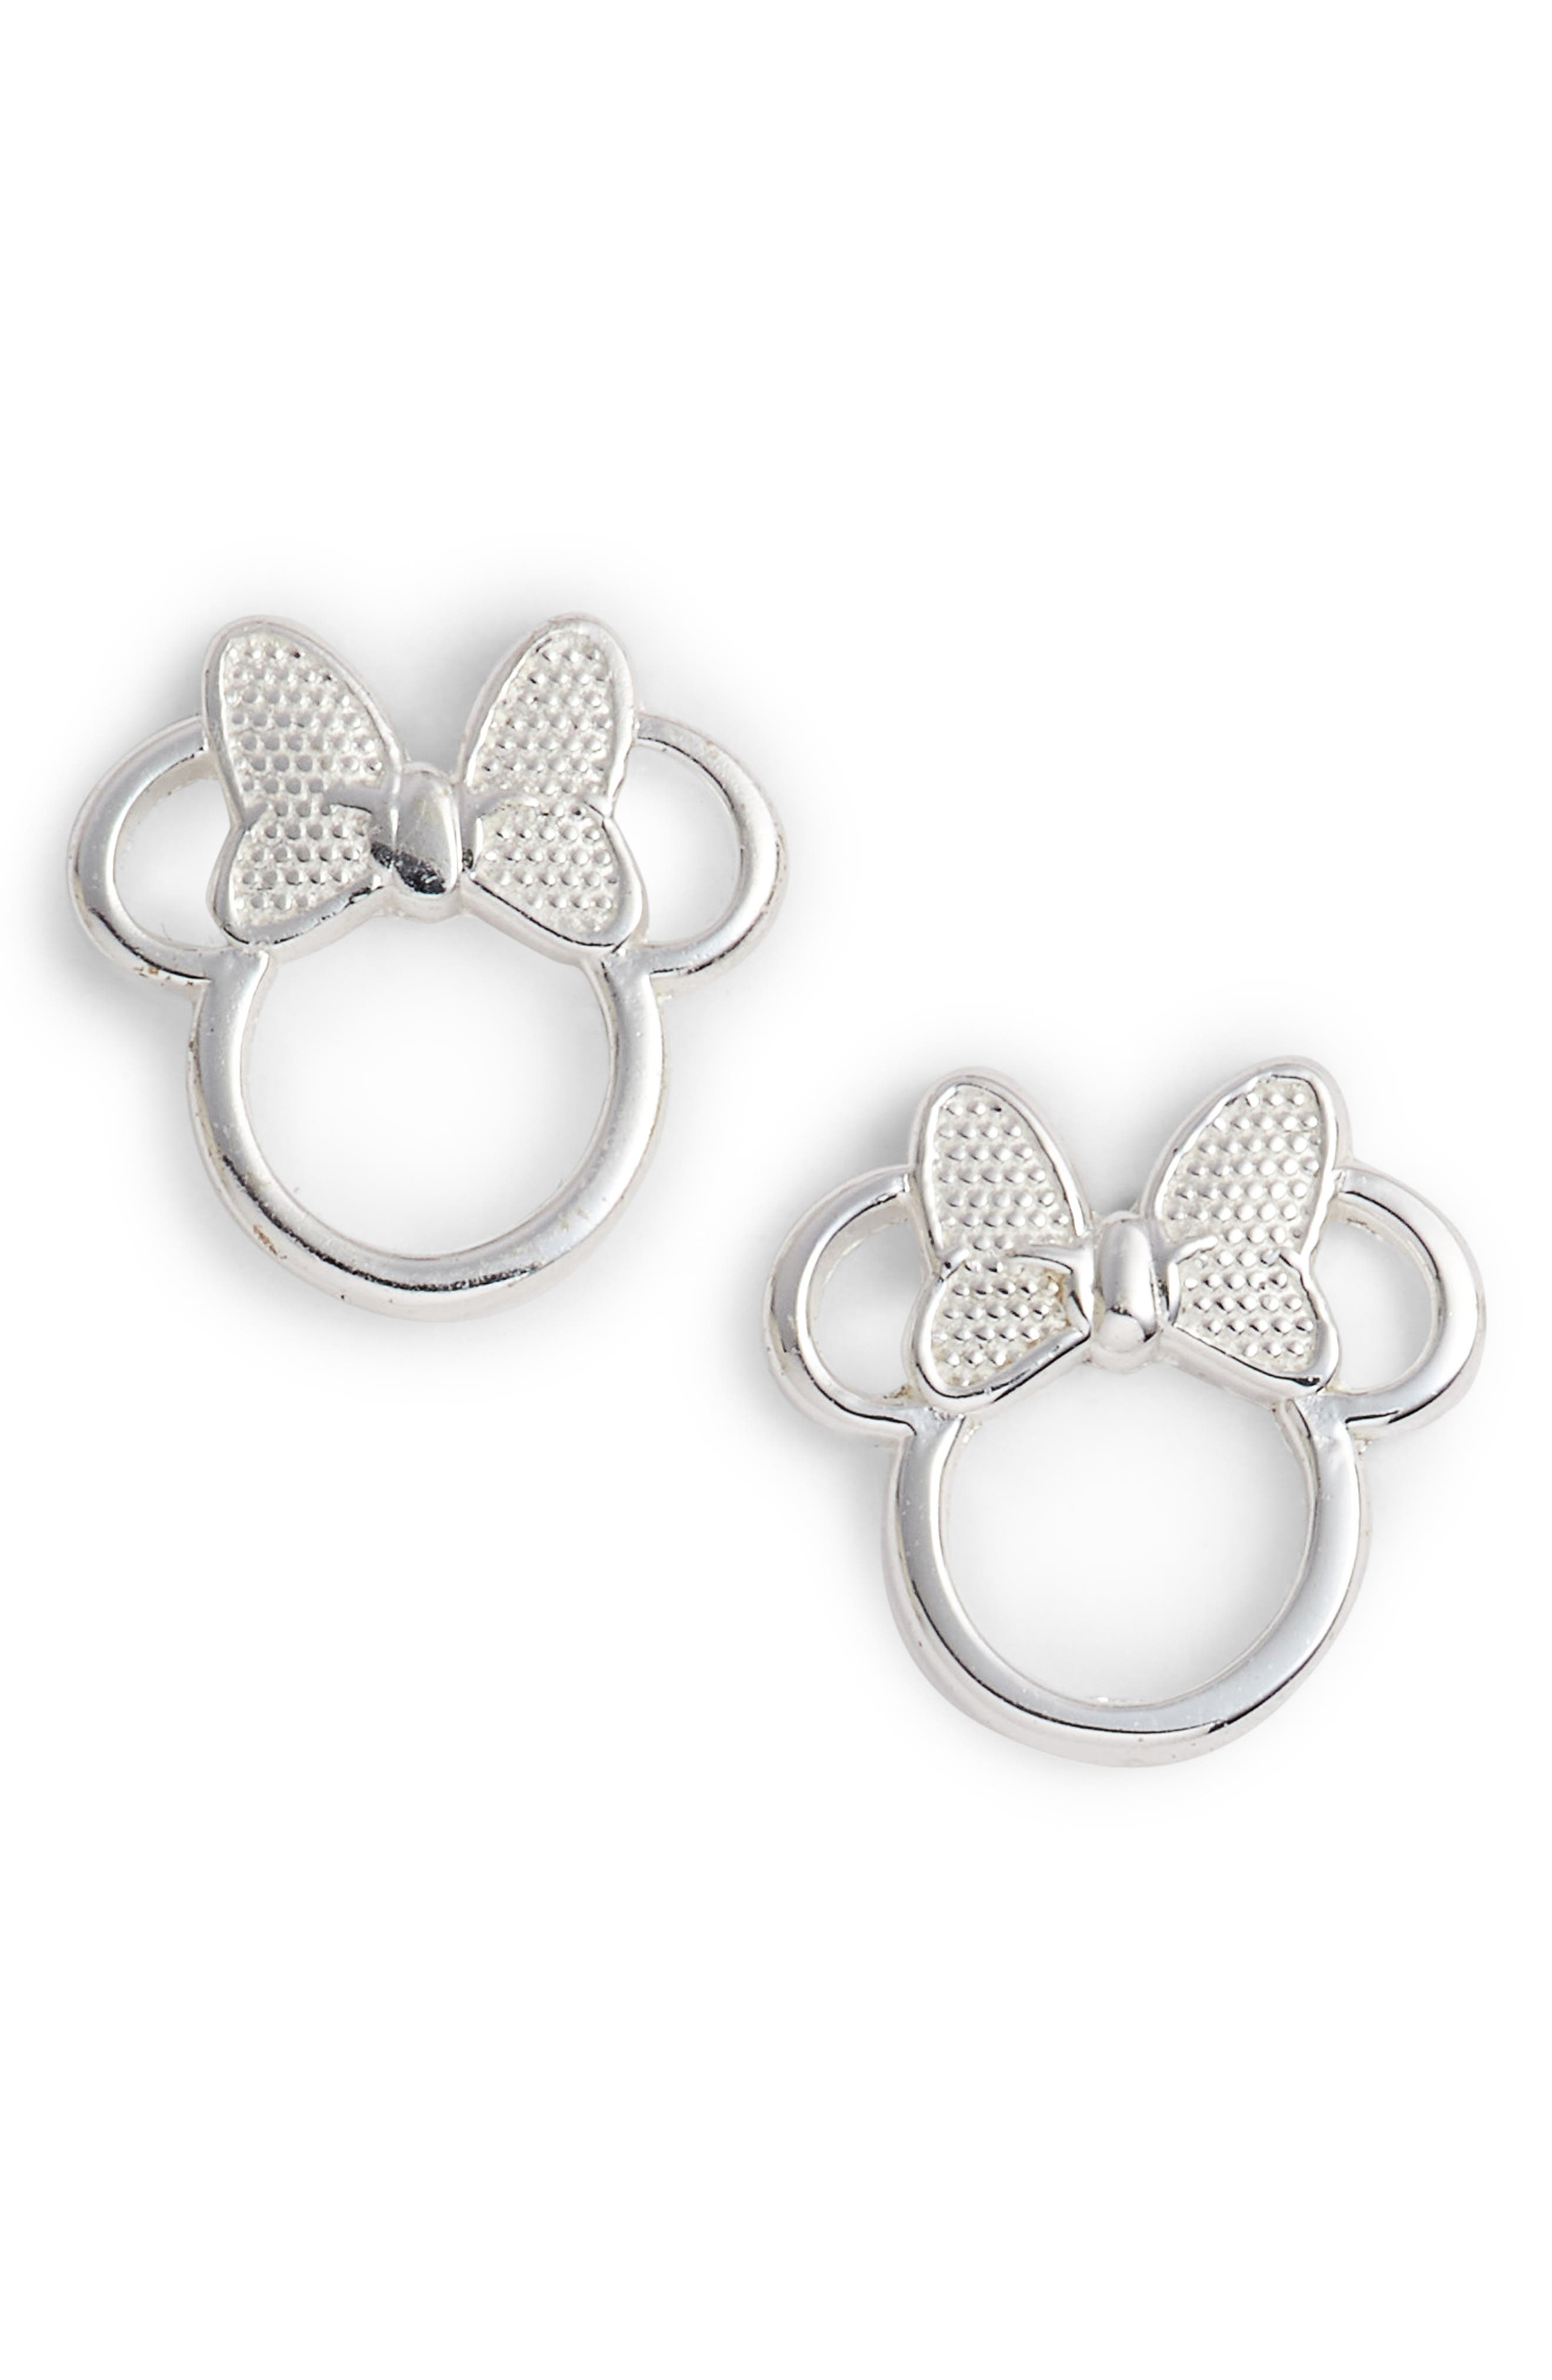 Minnie Mouse Stud Earrings,                             Main thumbnail 1, color,                             Silver